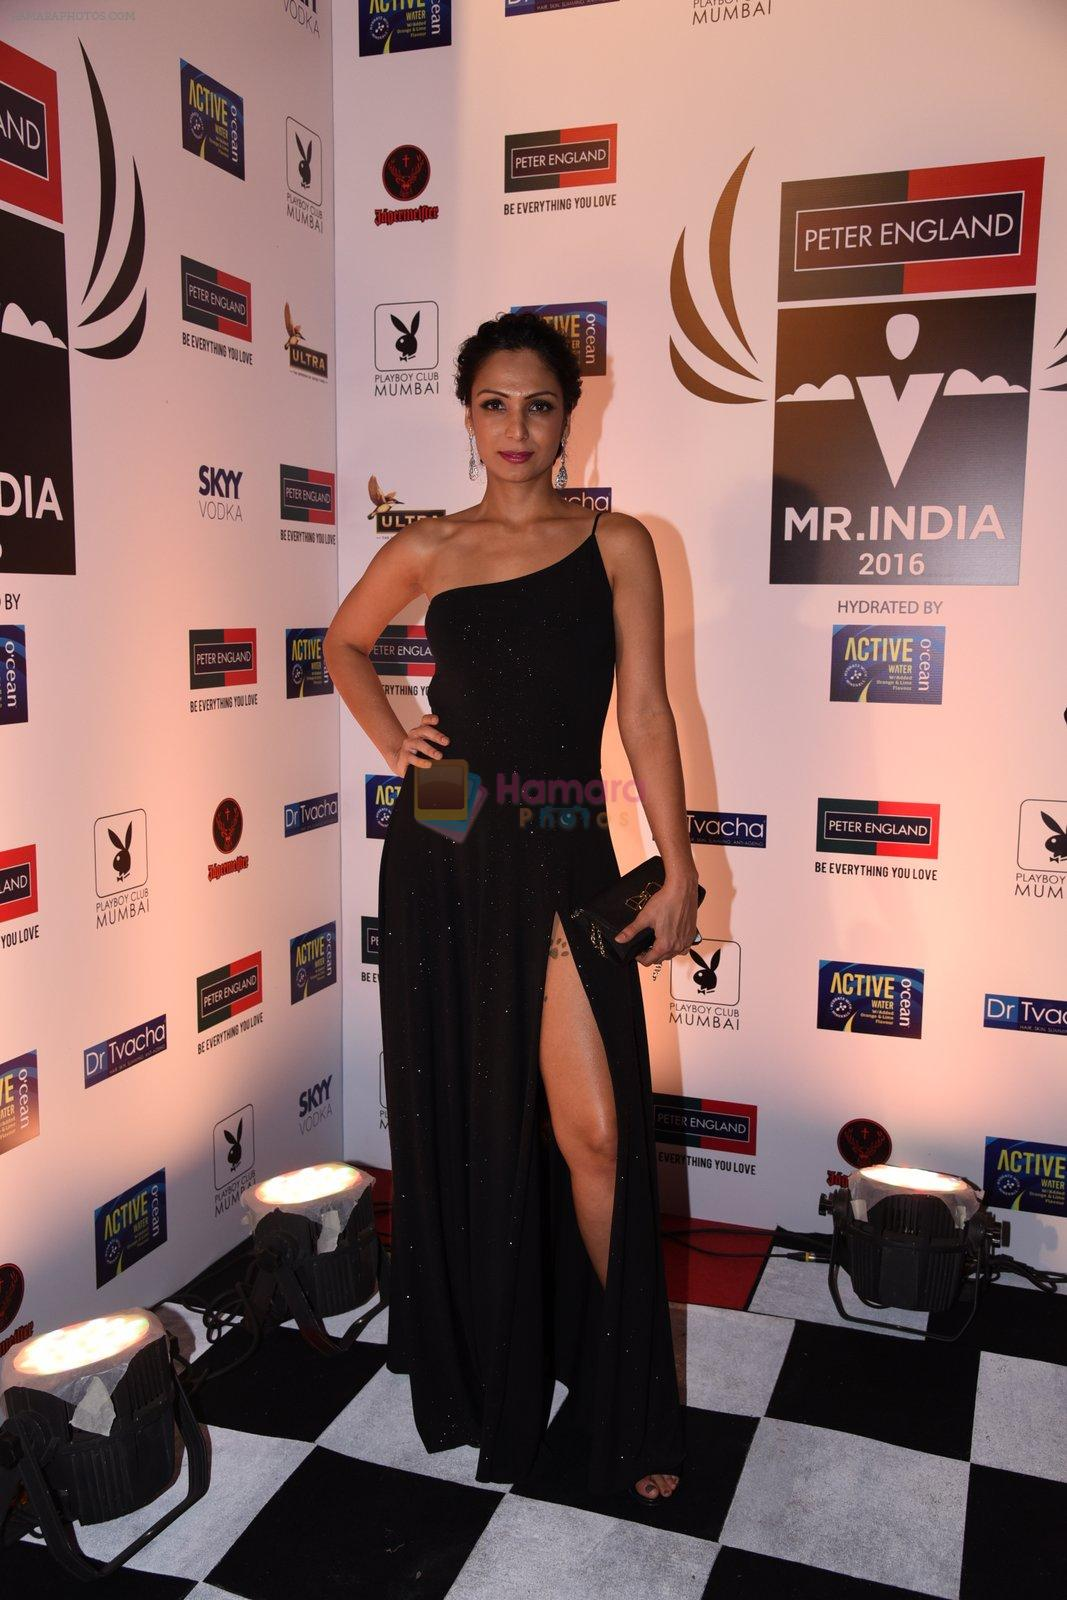 Shamita Singha at Peter England Mr India on 24th Nov 2016